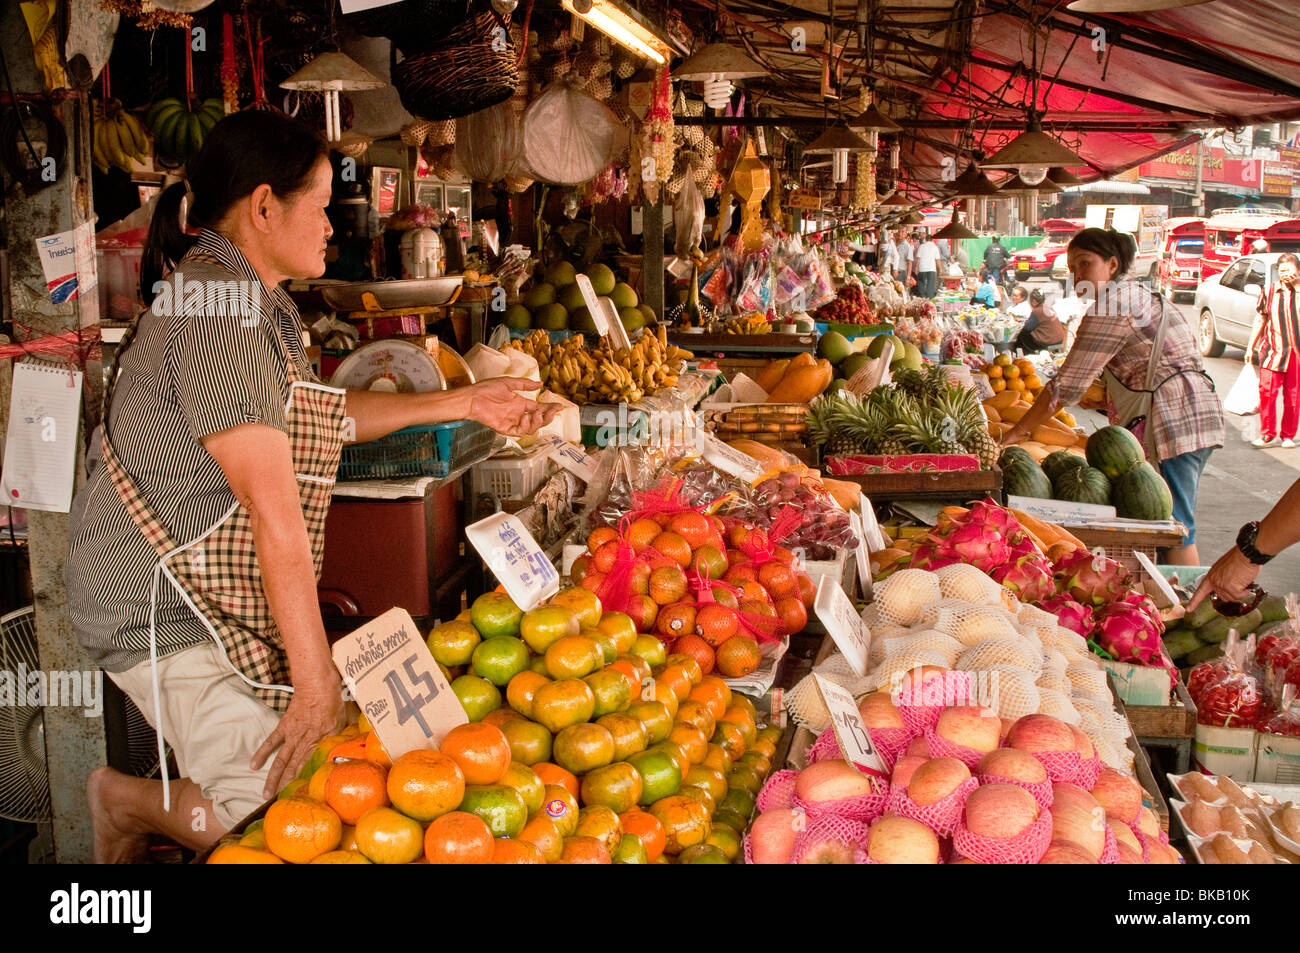 Marketplace near Chinatown and Ping River, Chiang Mai, Thailand. - Stock Image